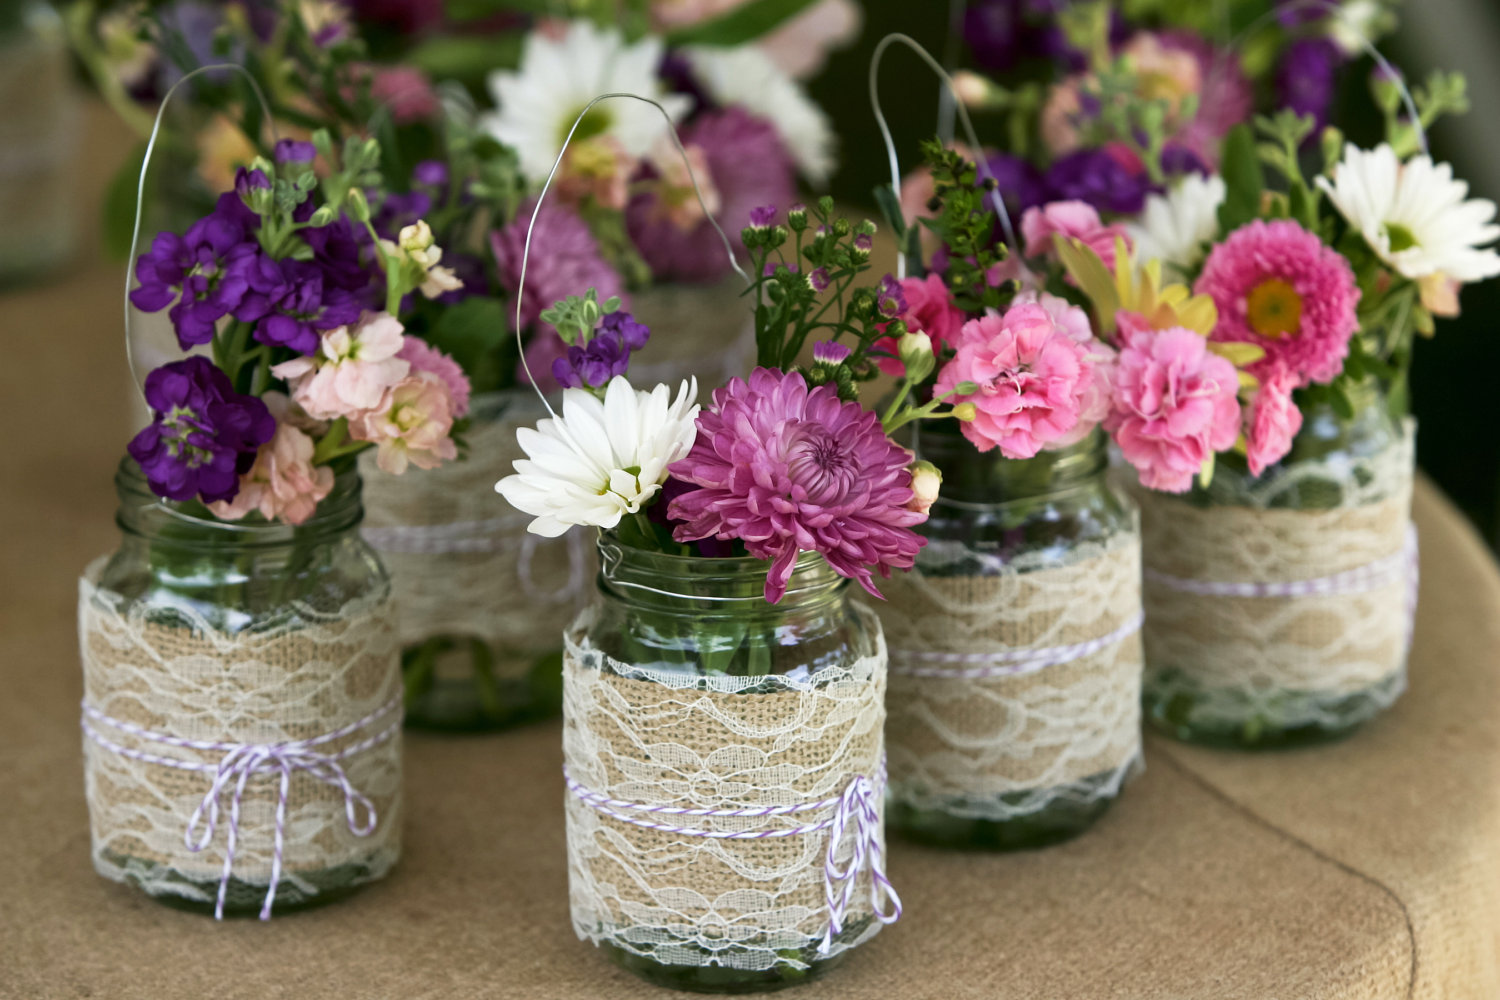 Homemade Mason Jar Centerpieces For Bridal Shower - Mason Jar Crafts